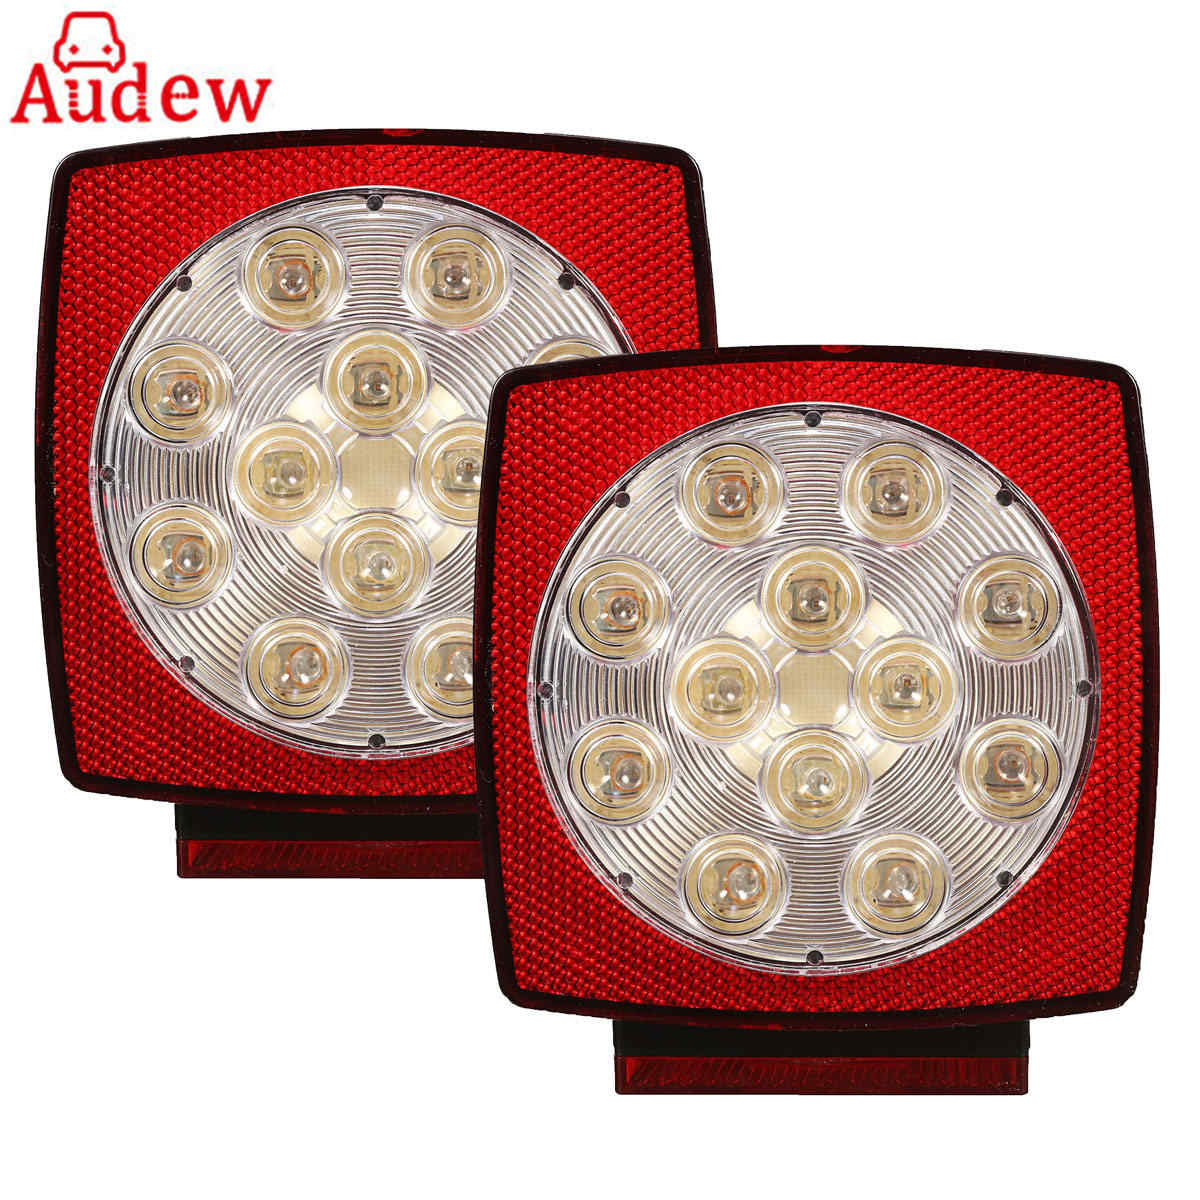 1 Pair Truck Car Rear LED Tail Stop Lihgt Lamp With License Plate Light Red & White For Vehicle Boat g126y 2pcs red led light 25 31mm spst 4pin on off boat rocker switch 16a 250v 20a 125v car dashboard home high quality cheaper